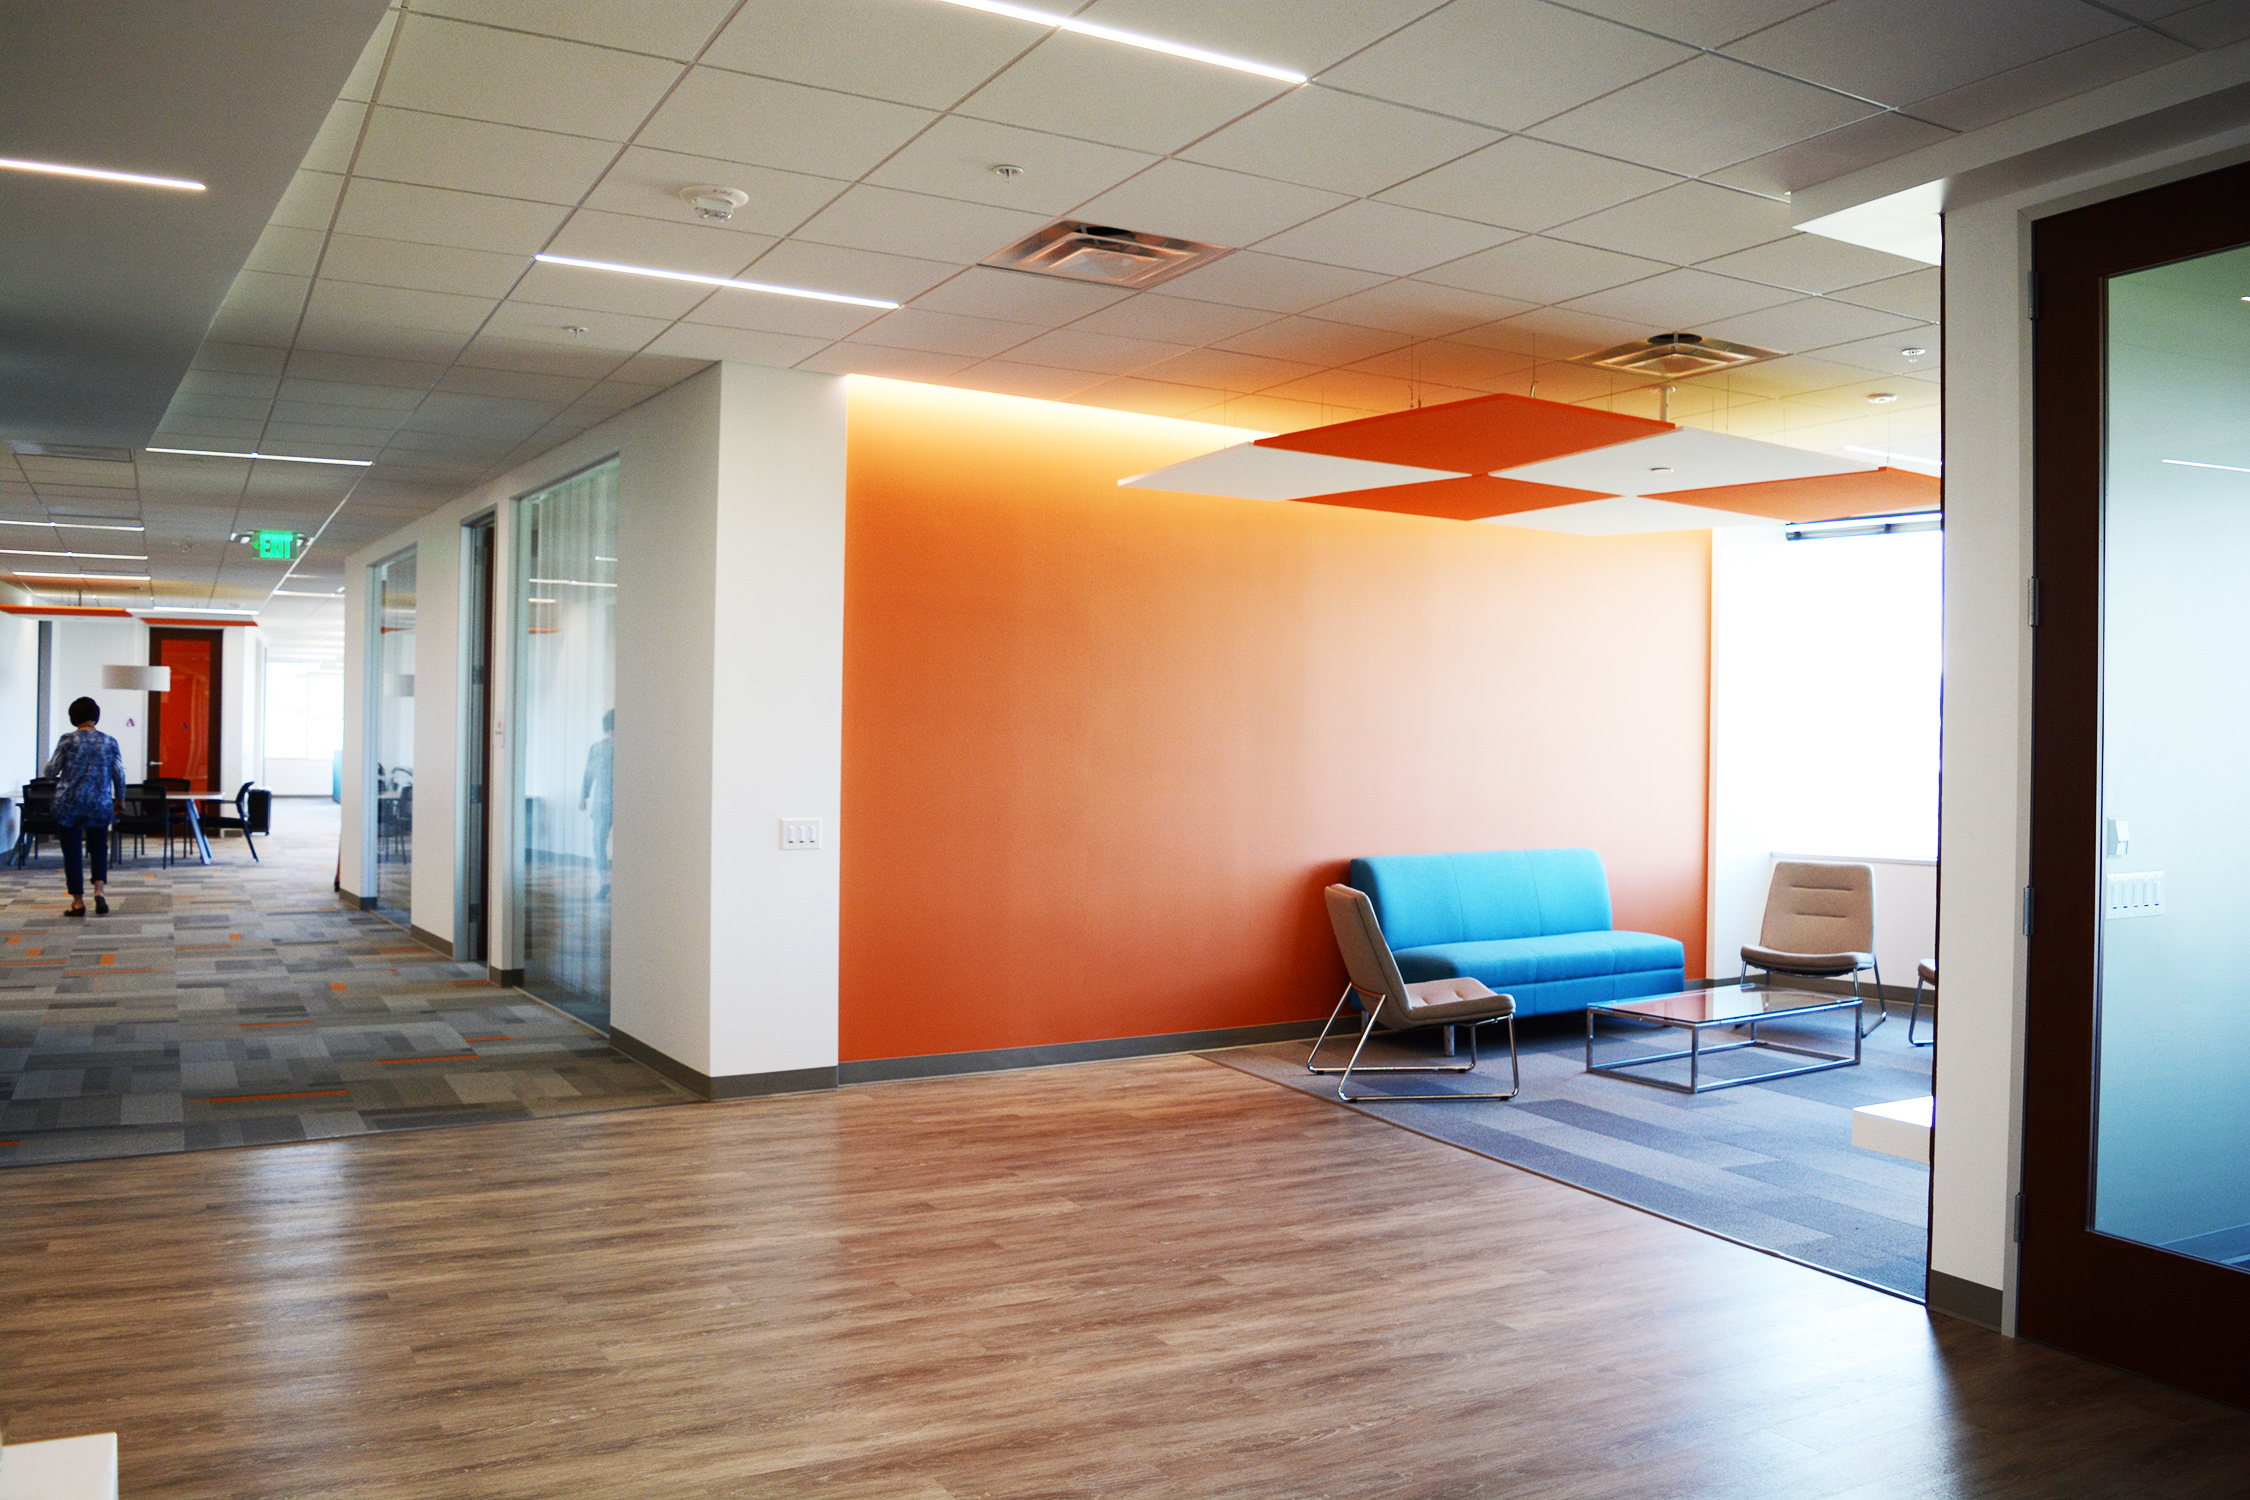 The reception and waiting space off the entry opens to an incredible view of the flatirons. To keep the area open, a small seating area occupies one corner in front of an Avoka orange wallcovering with subtle detail. As the space doubles as an informal meeting area, acoustical clouds were added to allow for more intimate conversation.